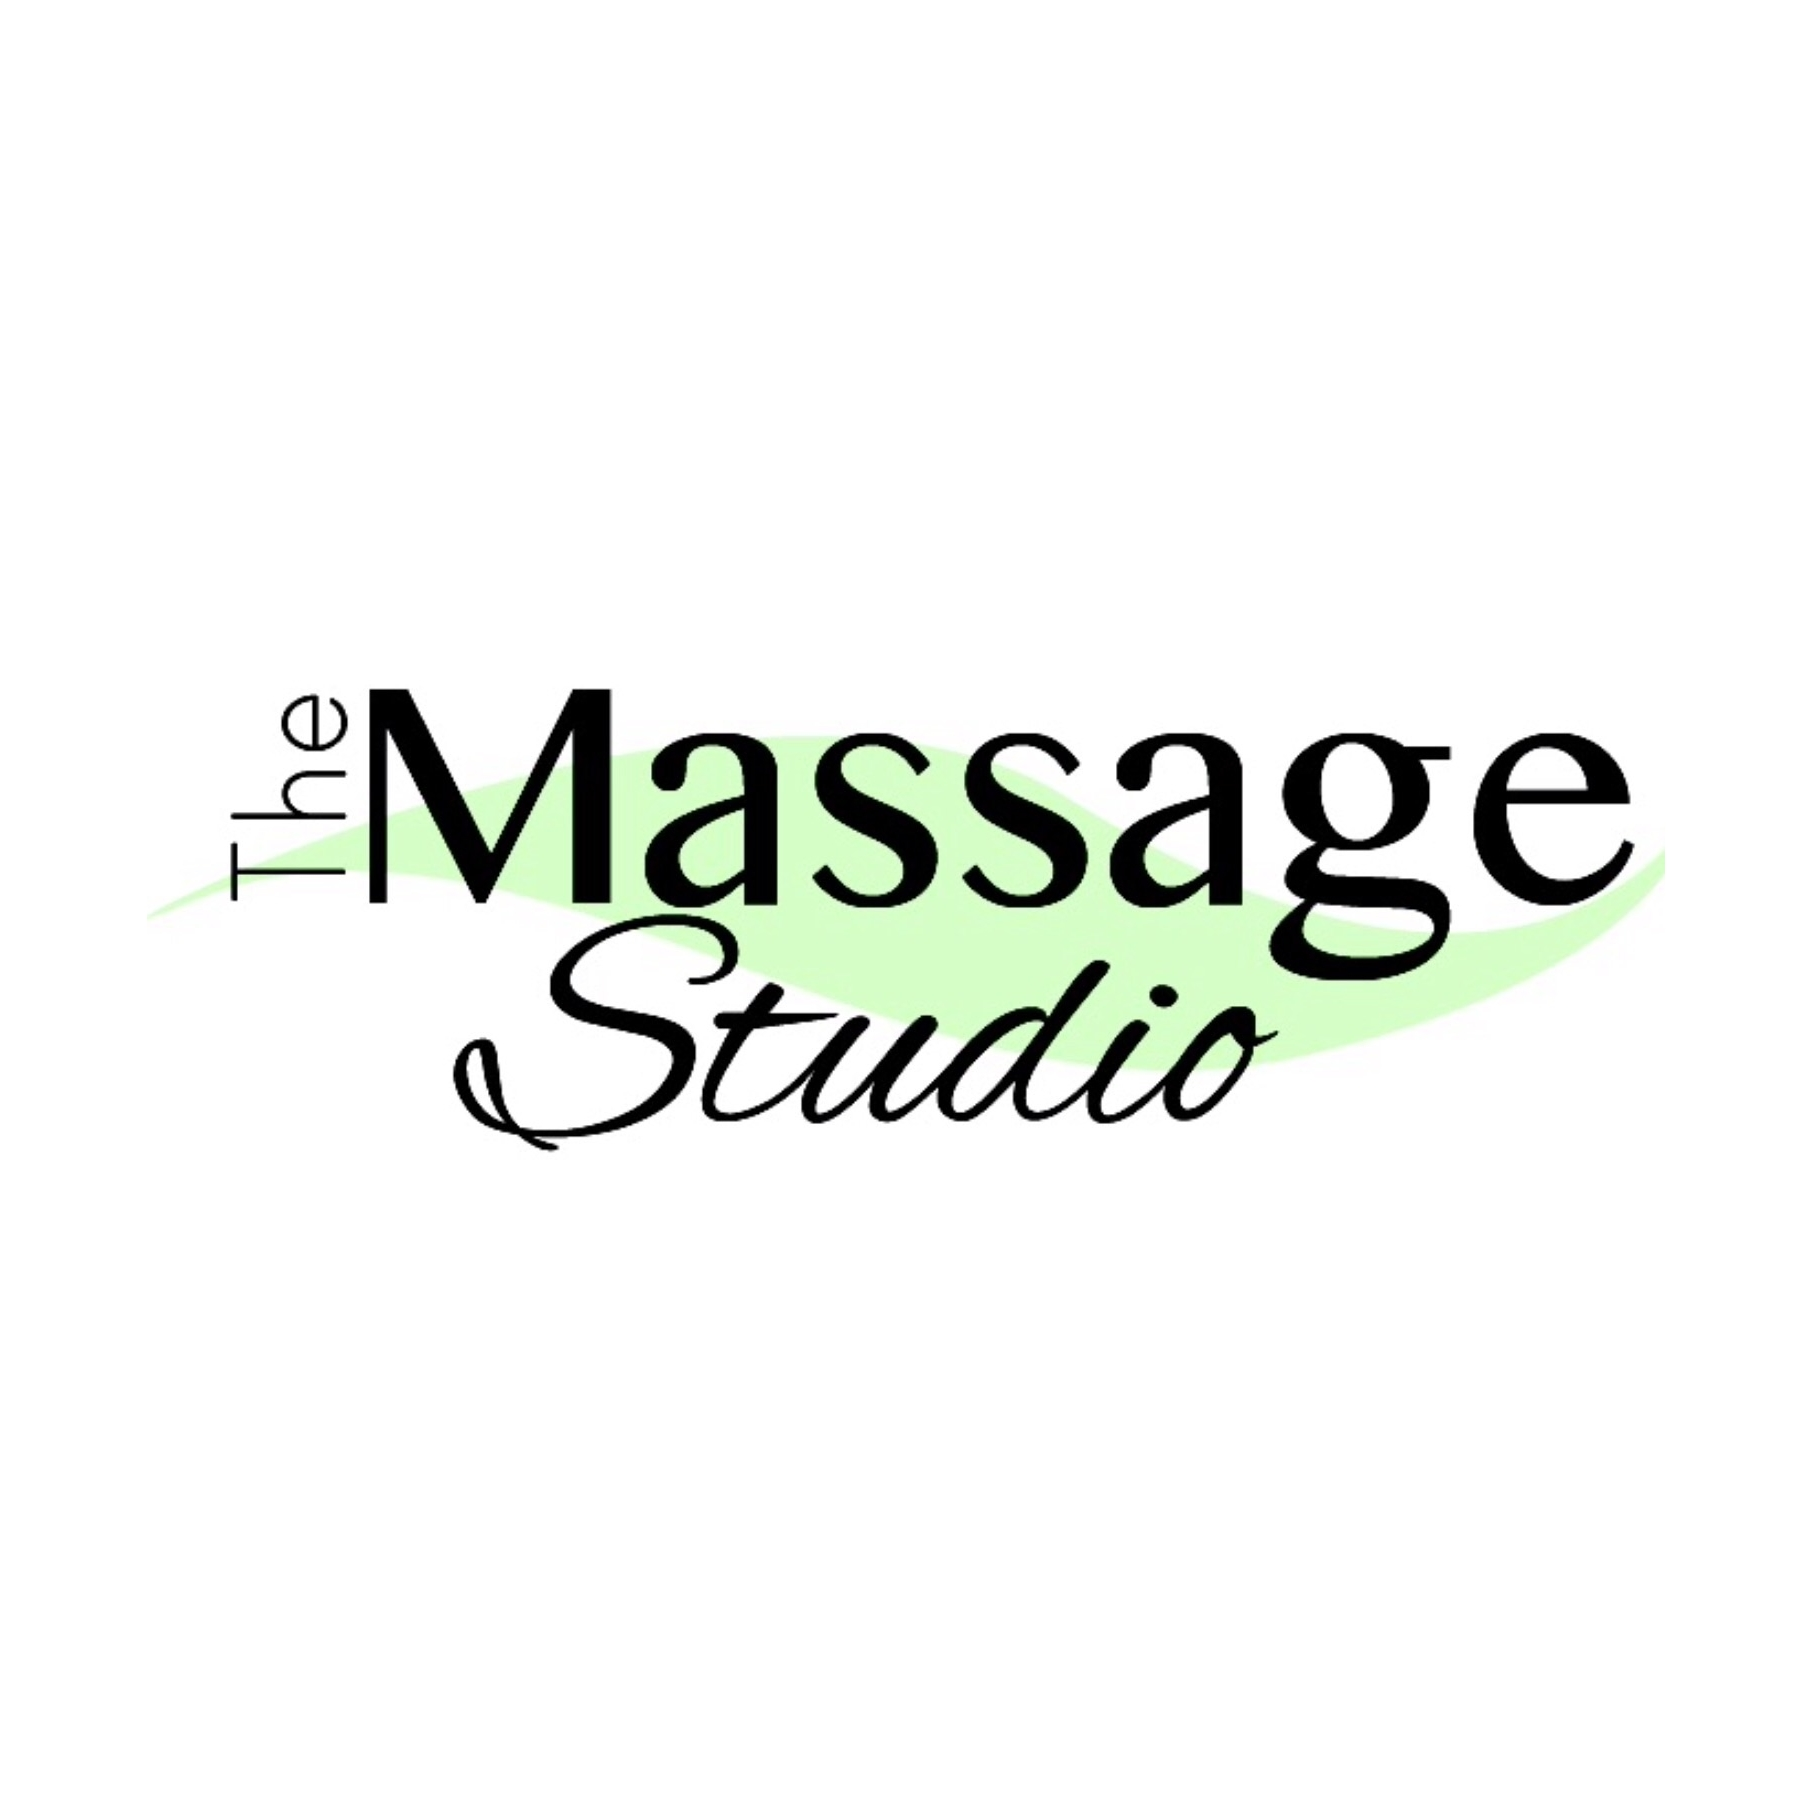 The Massage Studio